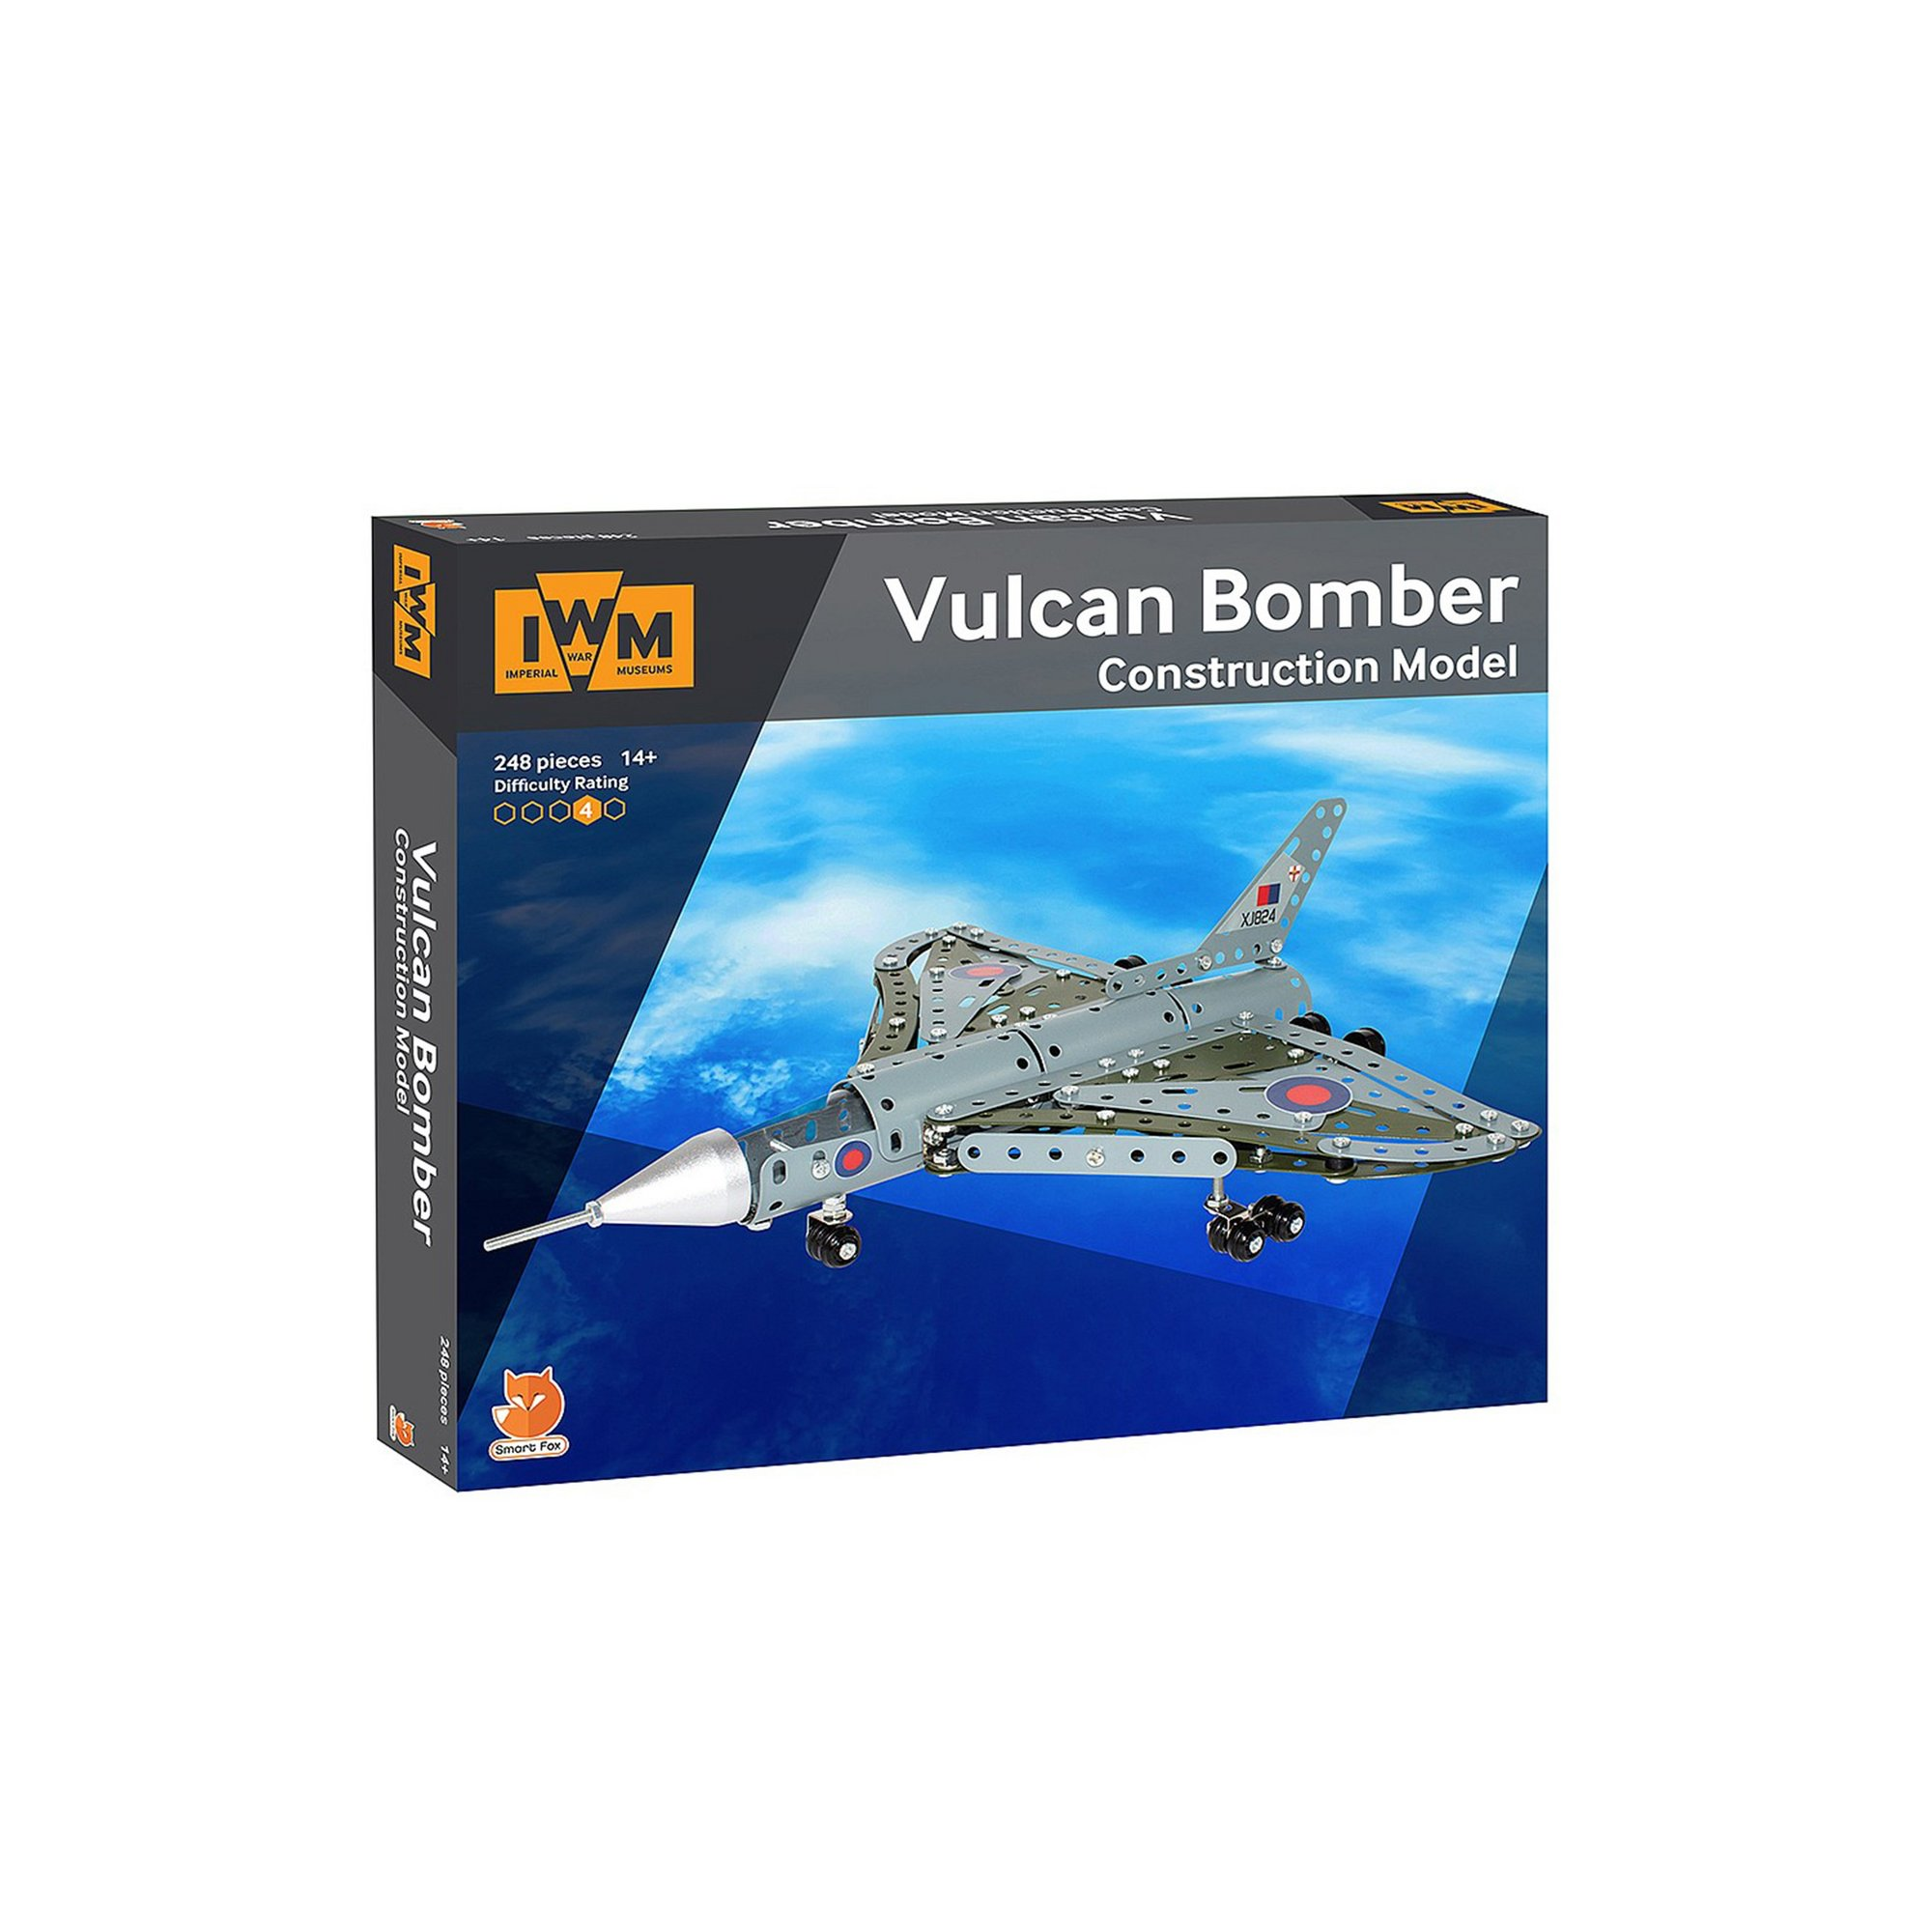 Image of Avro Vulcan Bomber Imperial War Museums Construction Set